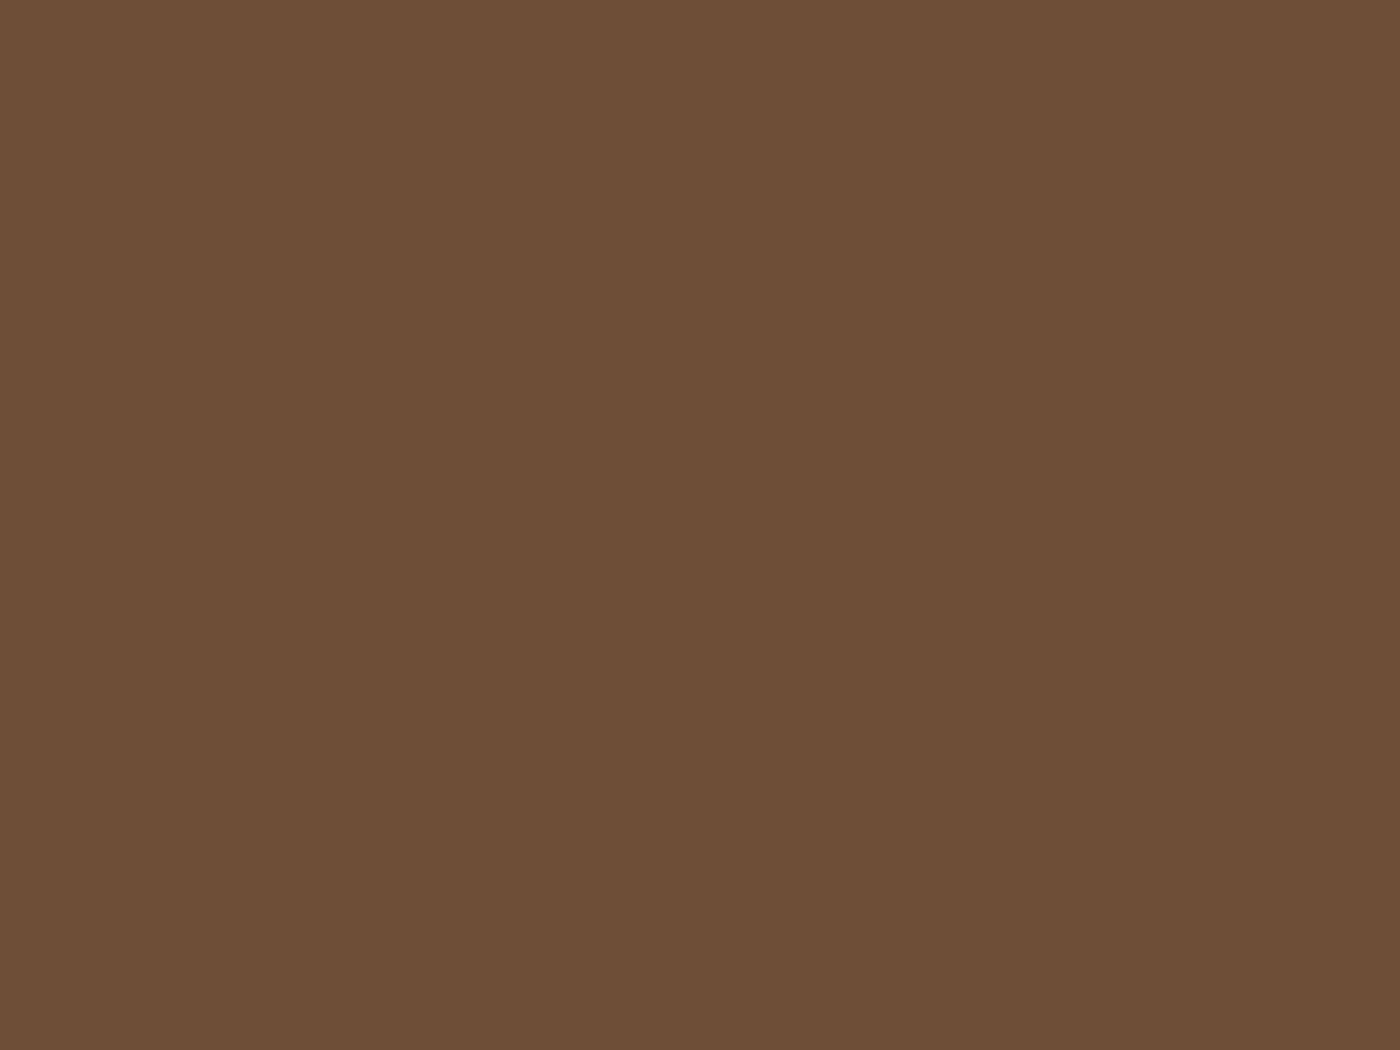 1400x1050 Tuscan Brown Solid Color Background